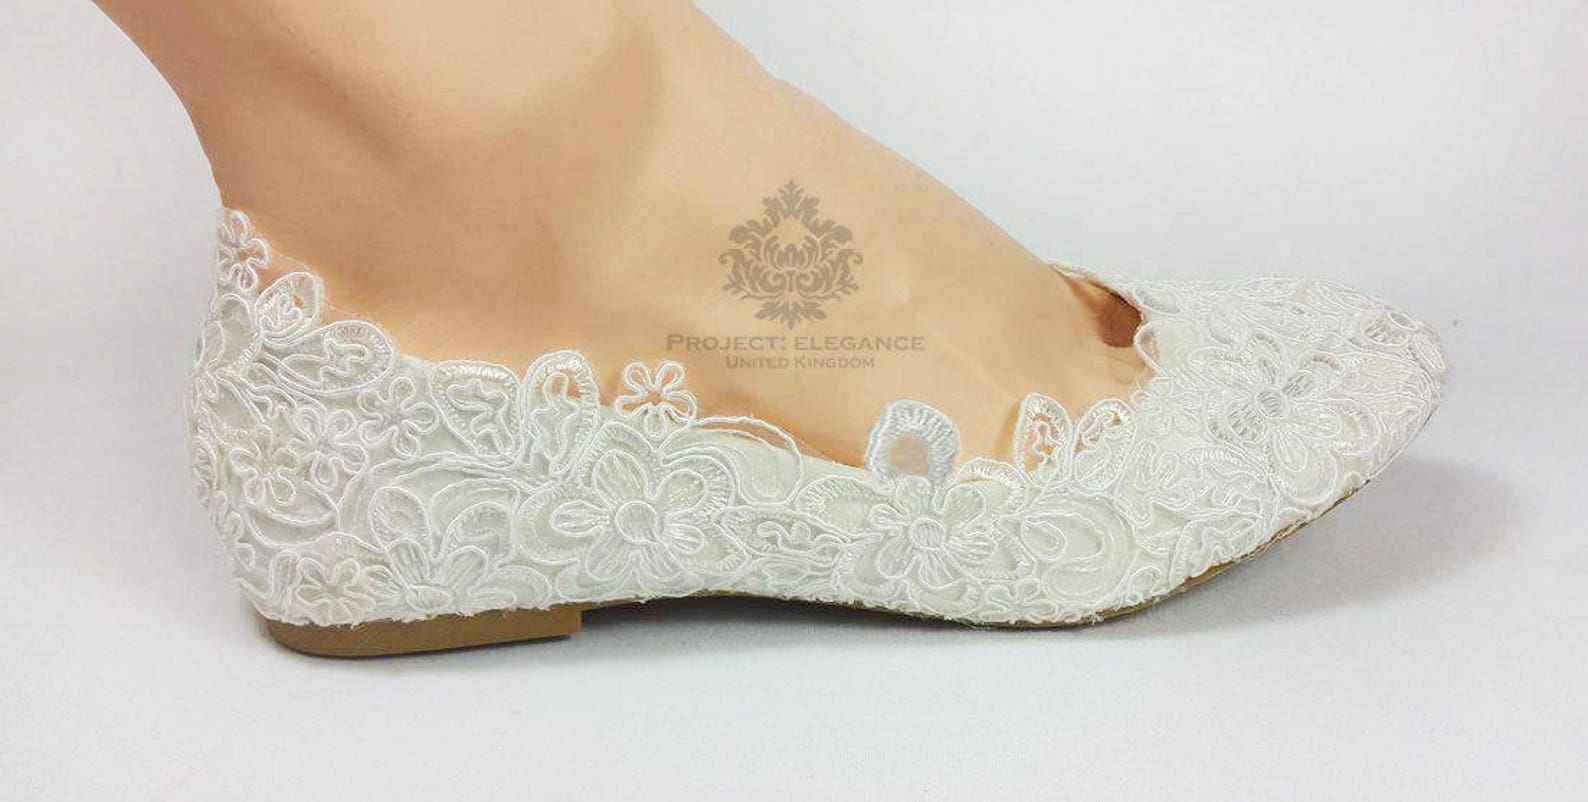 blue,blush, ivory lace ballerina's, open peep toed flat shoes, wedding, bridal ballet shoes, vintage wedding shoes, flat bri